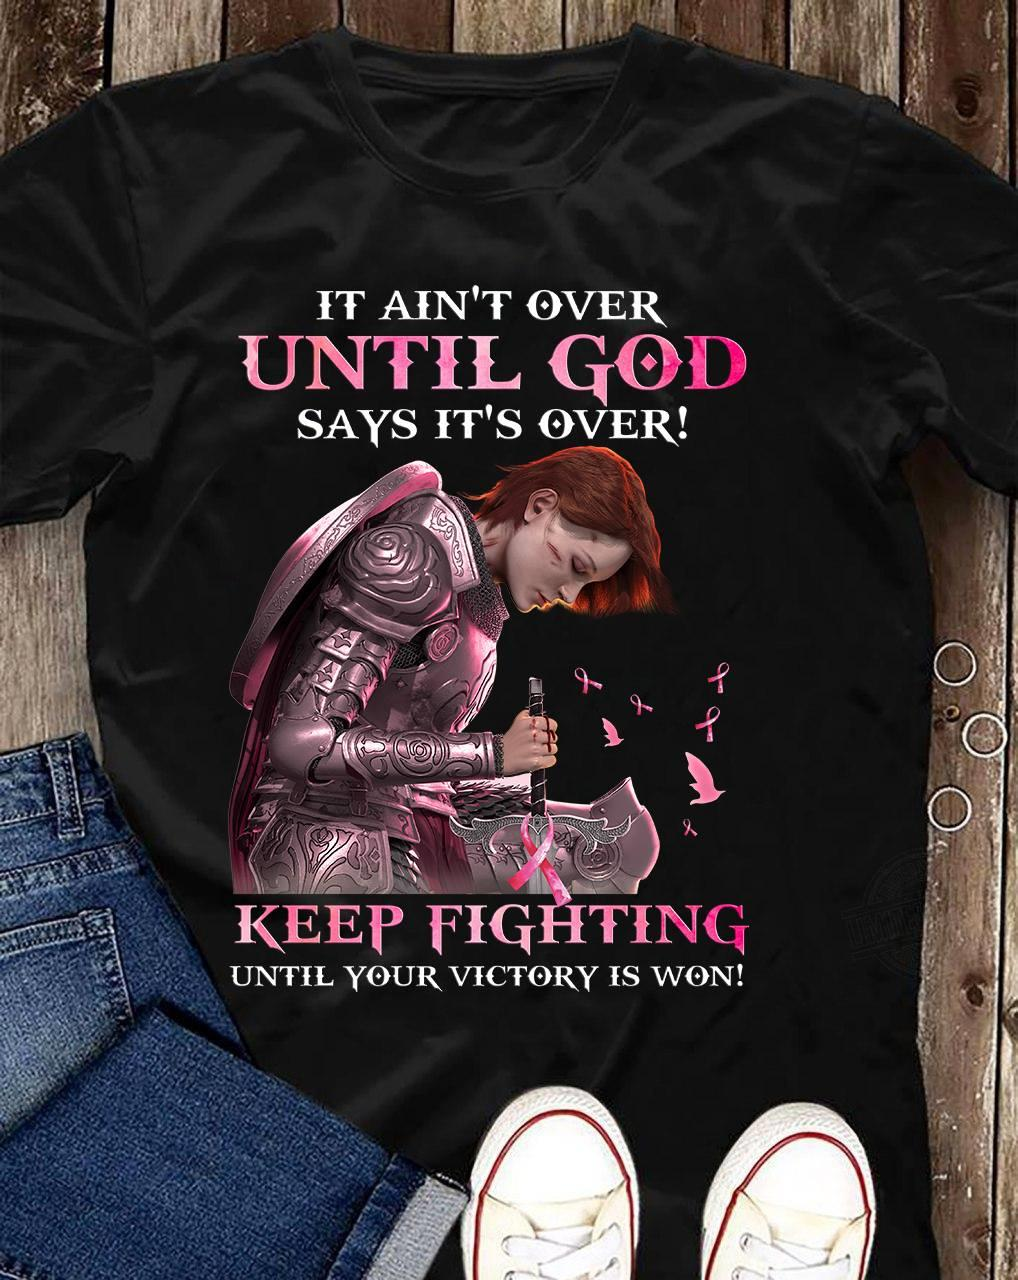 It Ain't Over Until God Says It's Over Shirt